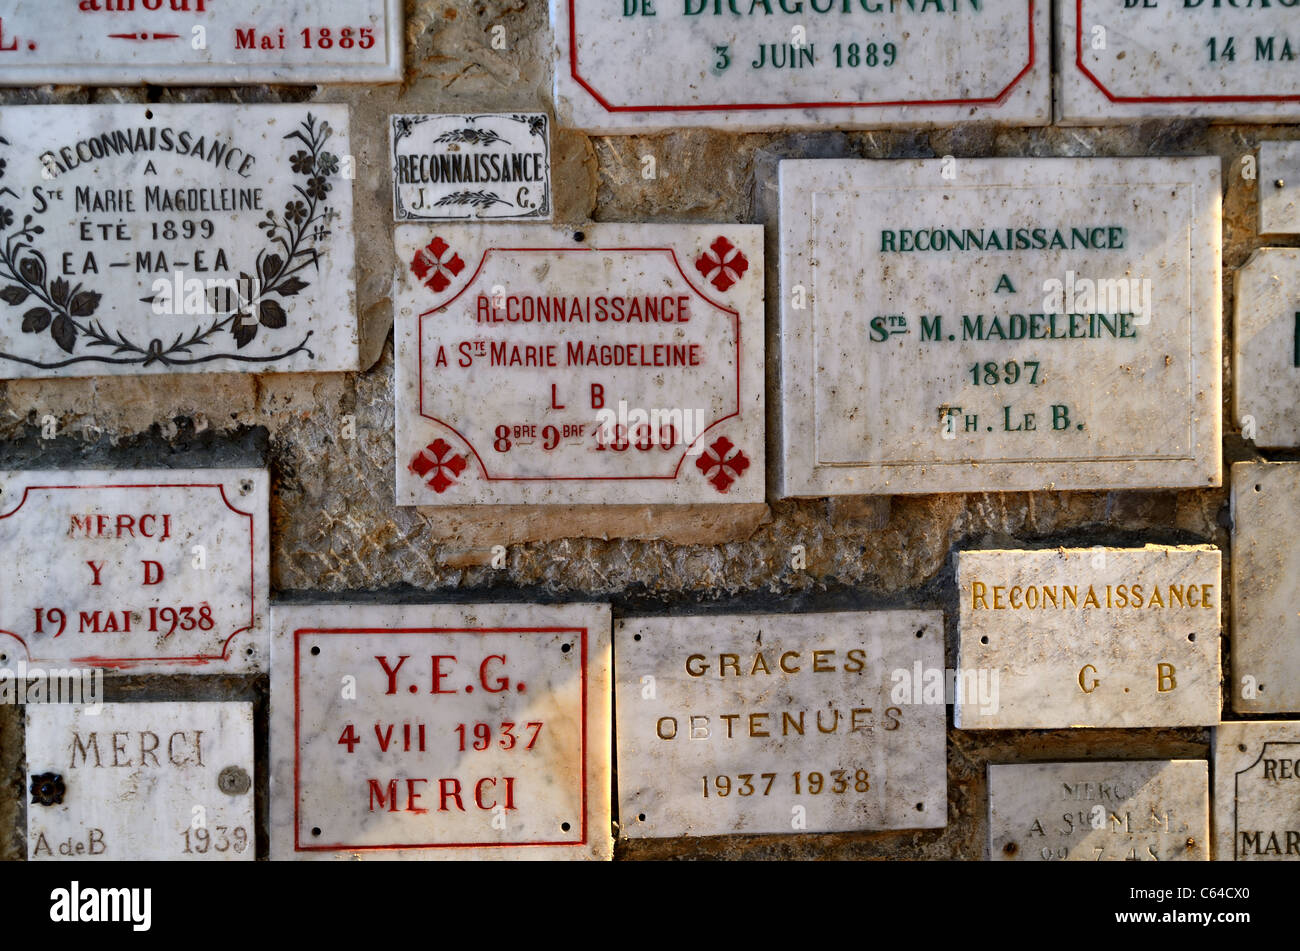 Ex Votos Inside the Mary Magdalene Holy Cave or Grotto,  Sainte-Baume Massif or Sainte Baume, Provence, France - Stock Image